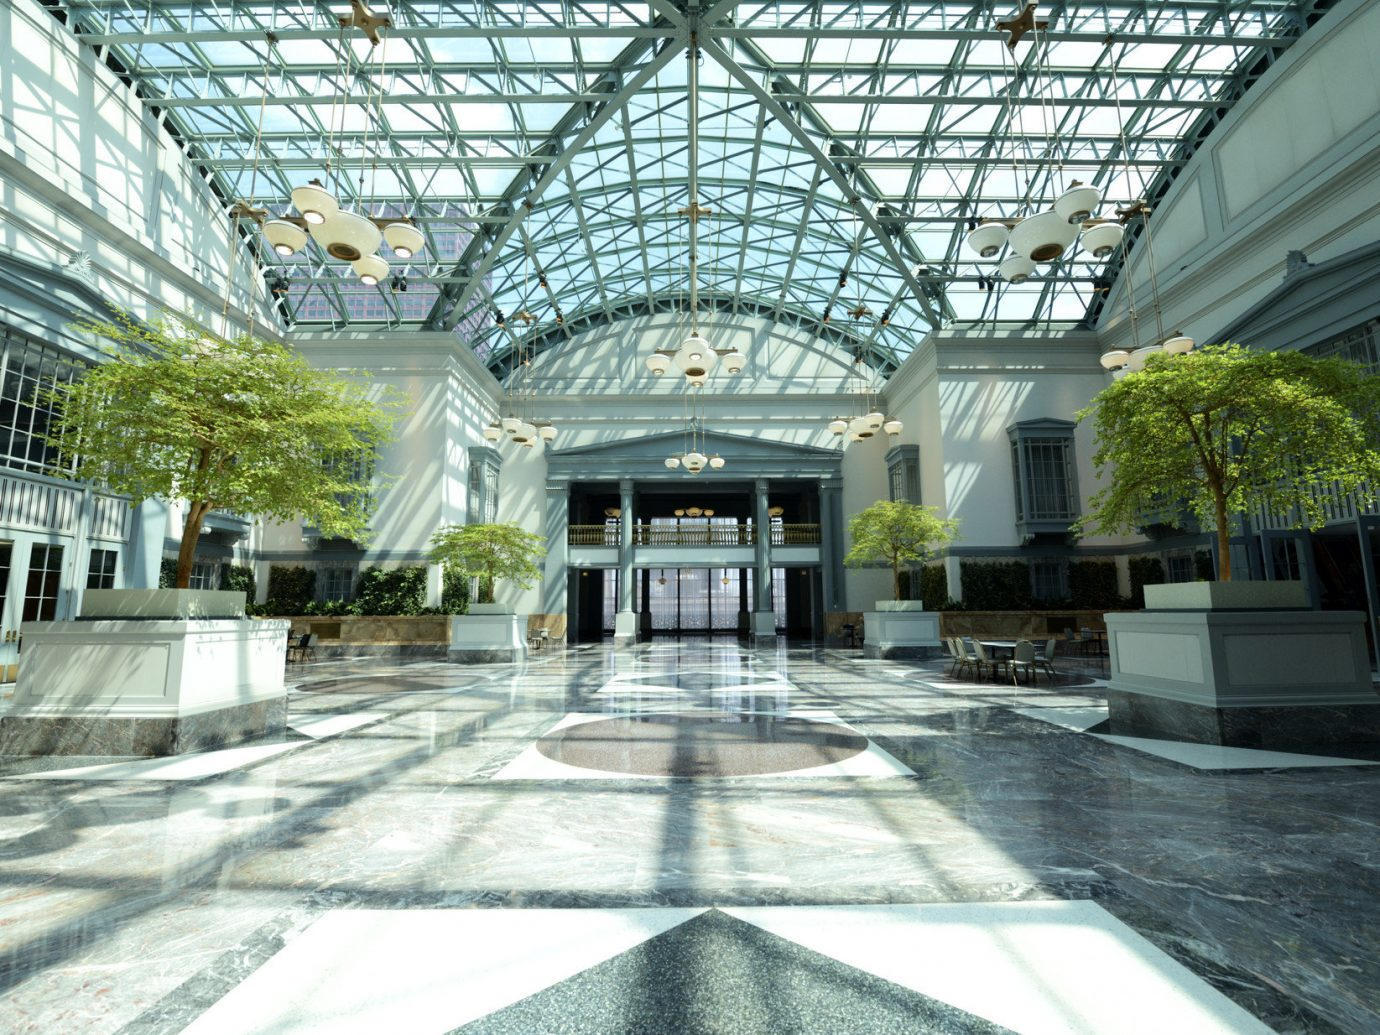 Budget building indoor plaza Architecture Courtyard greenhouse estate Lobby outdoor structure facade pavilion orangery palace court